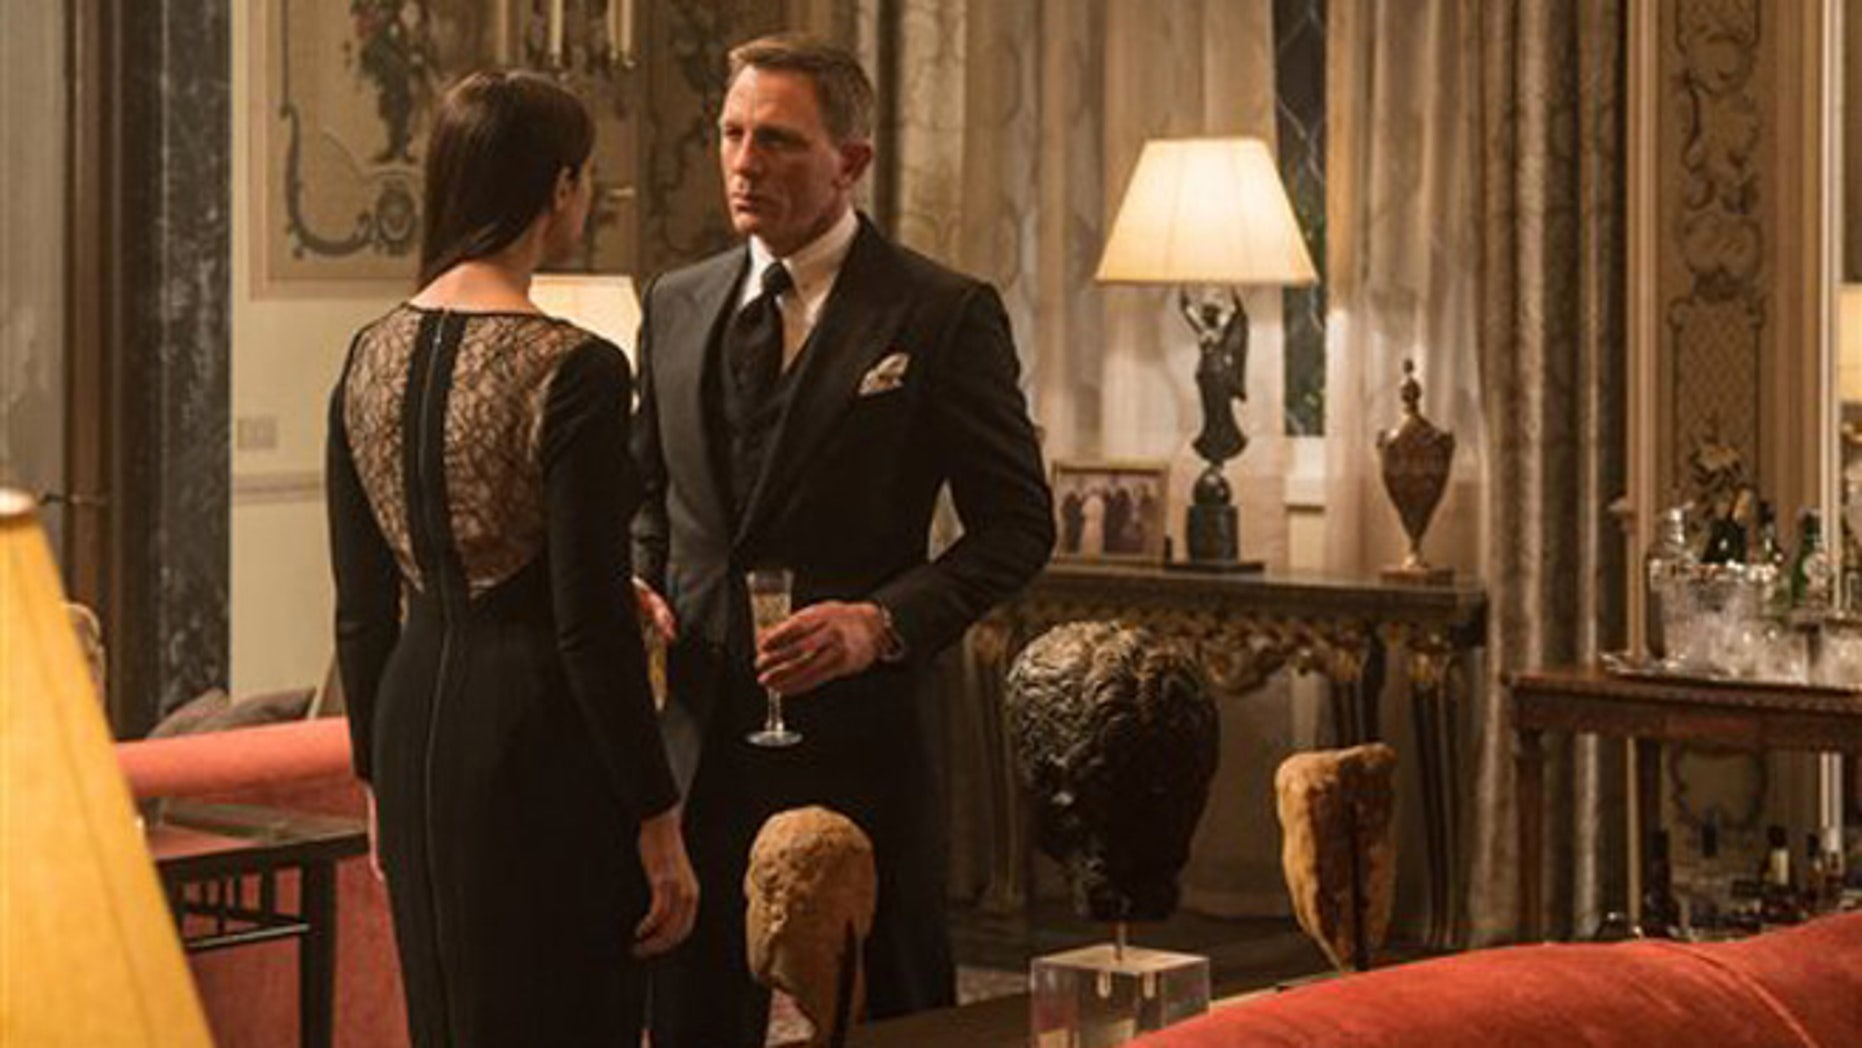 """In this image released by Metro-Goldwyn-Mayer Pictures/Columbia Pictures/EON Productions, Monica Bellucci, left, and Daniel Craig appear in a scene from the James Bond film, """"Spectre."""""""